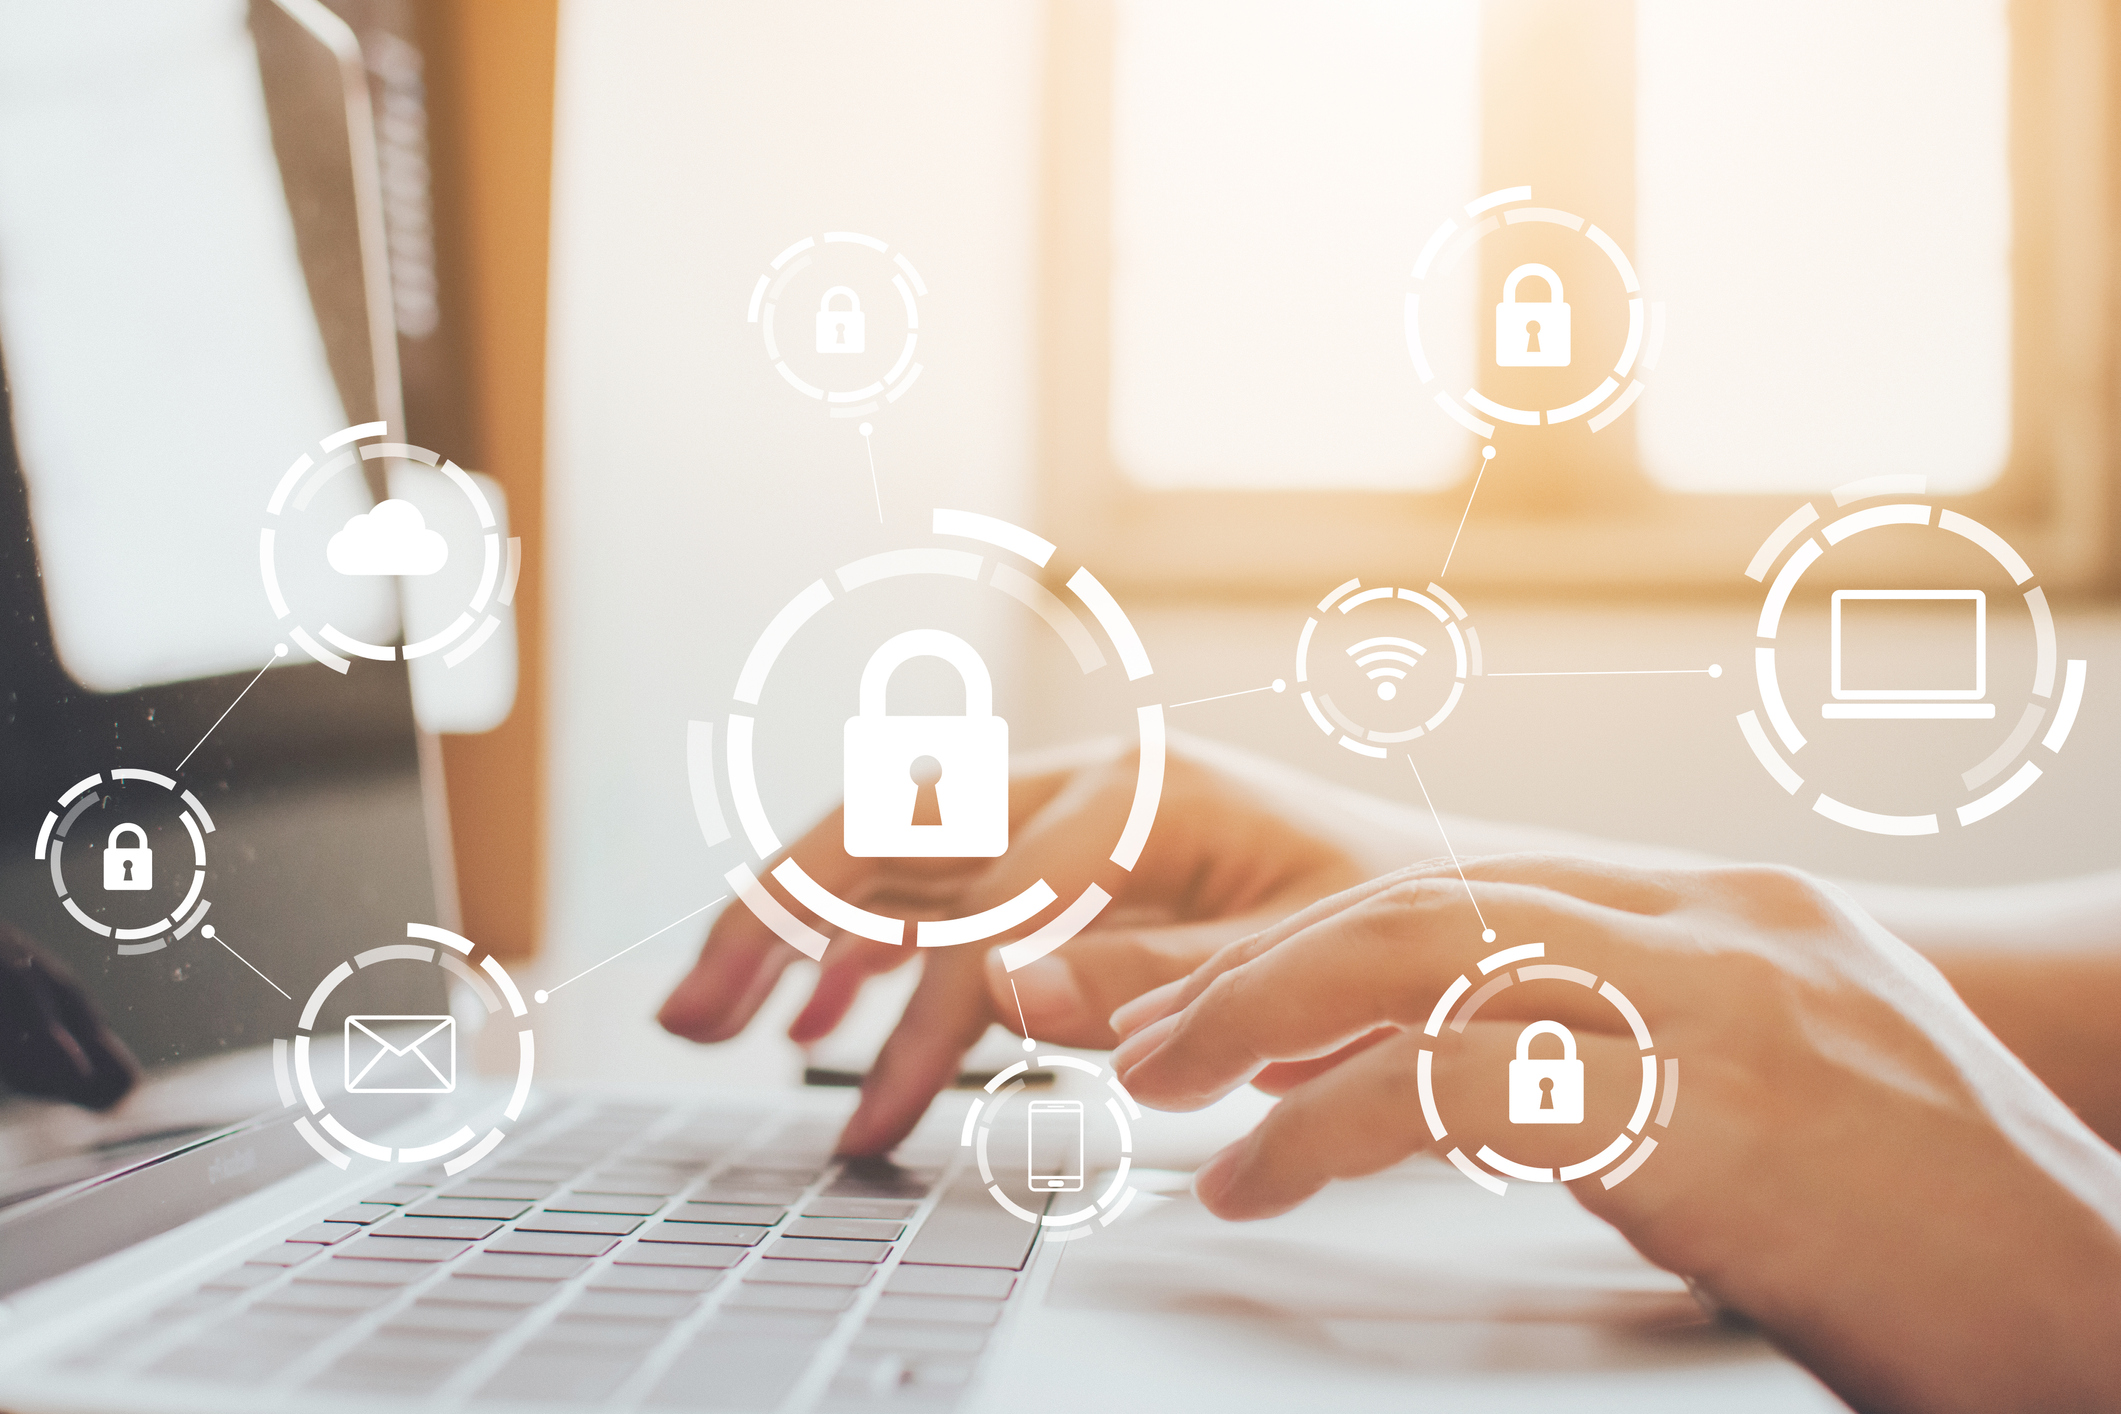 Protect your personal information online and in person